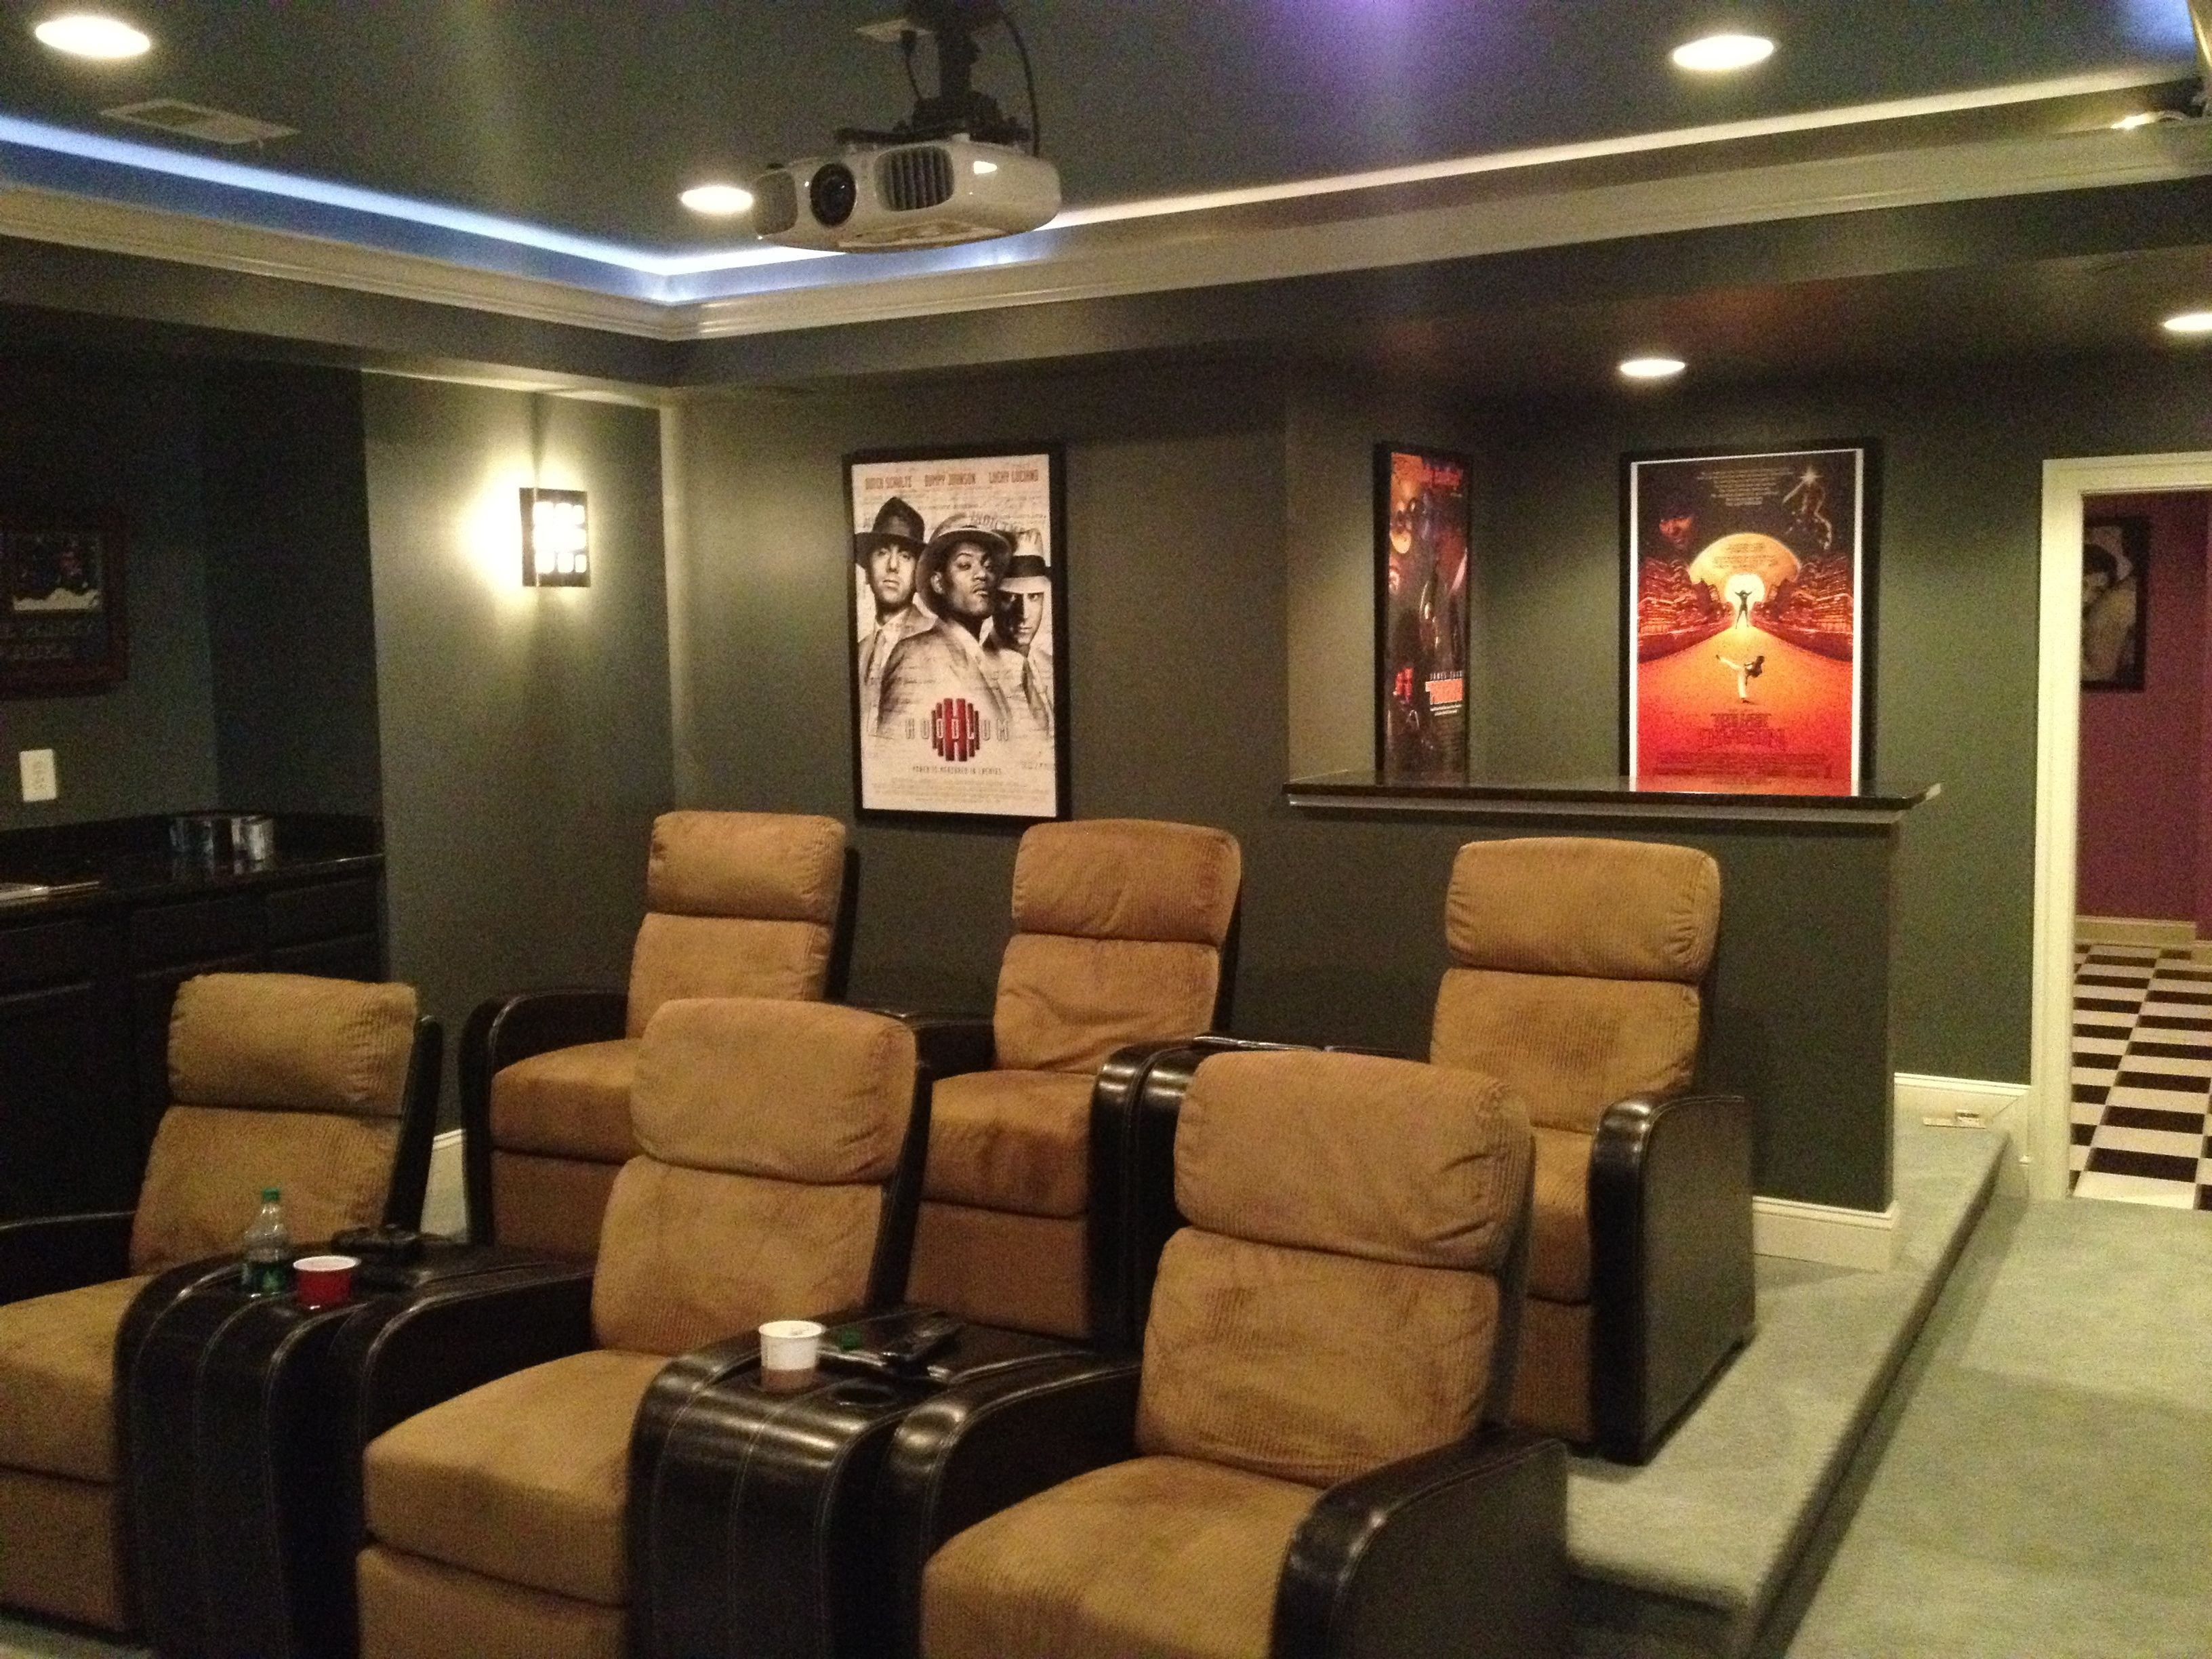 Basement custom theater ashburn basement finishing Theater rooms design ideas